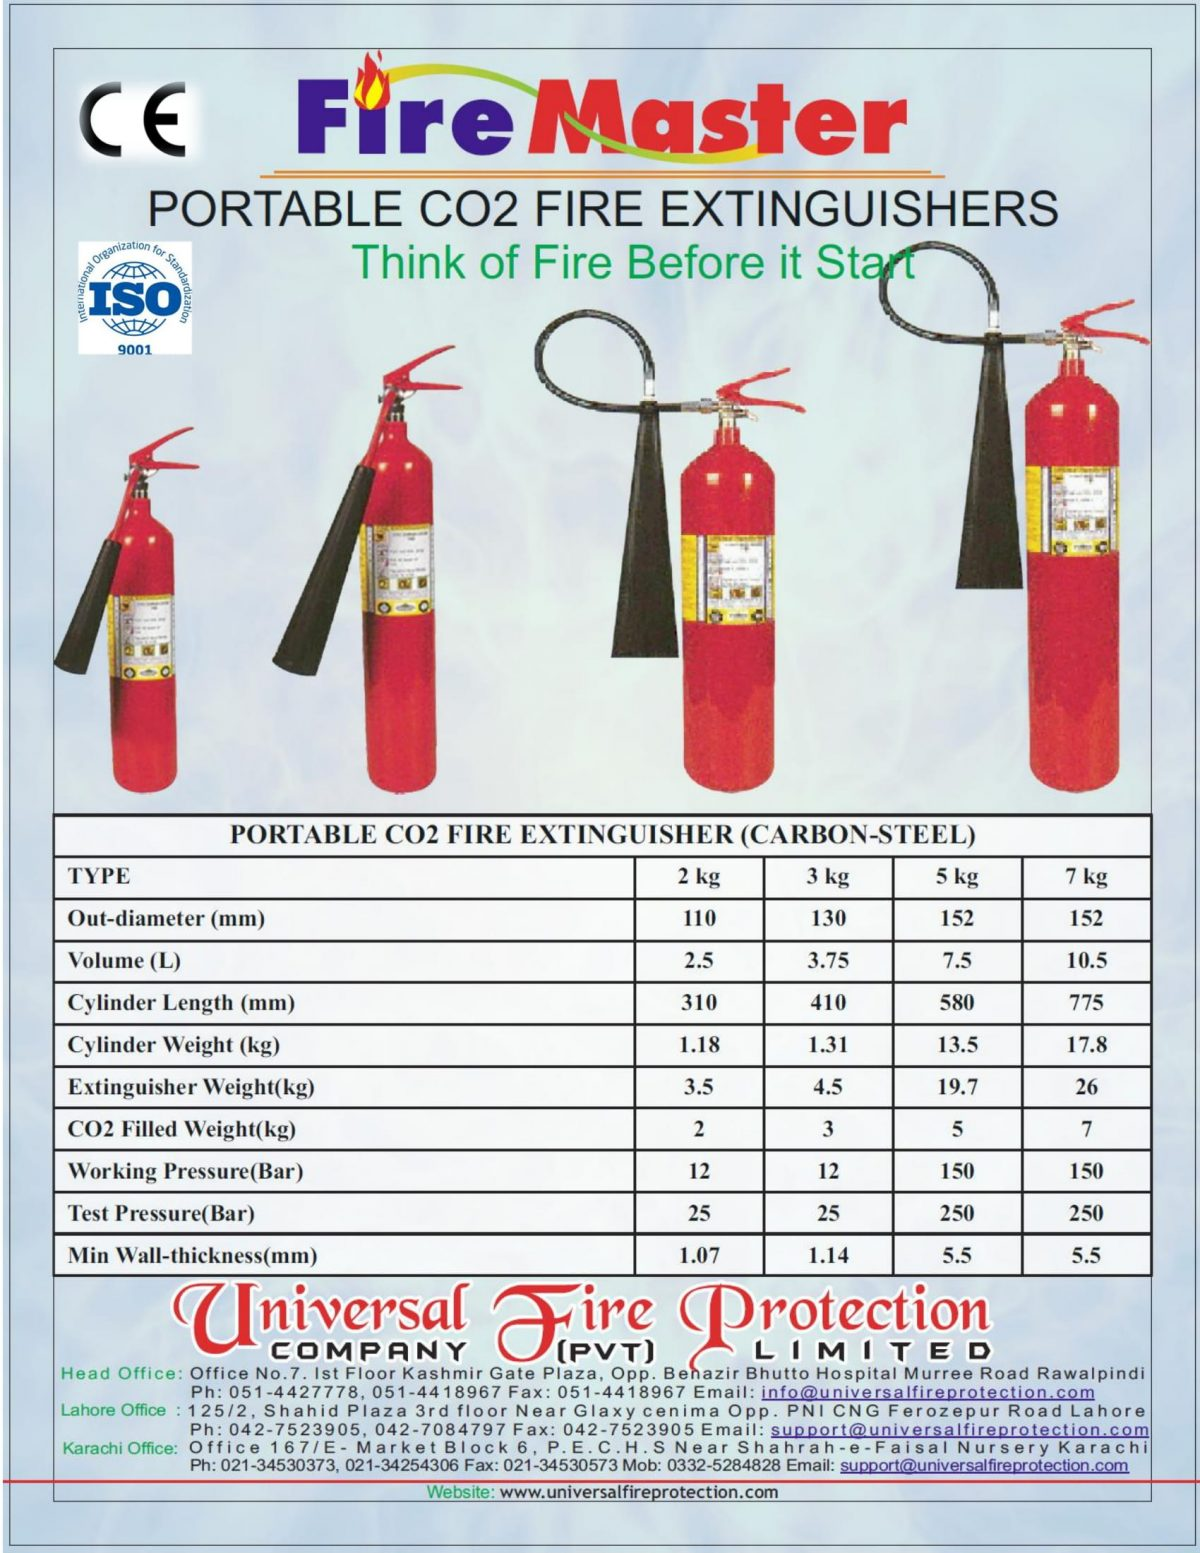 CO2 Portable Fire Extinguisher 1 CO2 Portable Fire Extinguisher